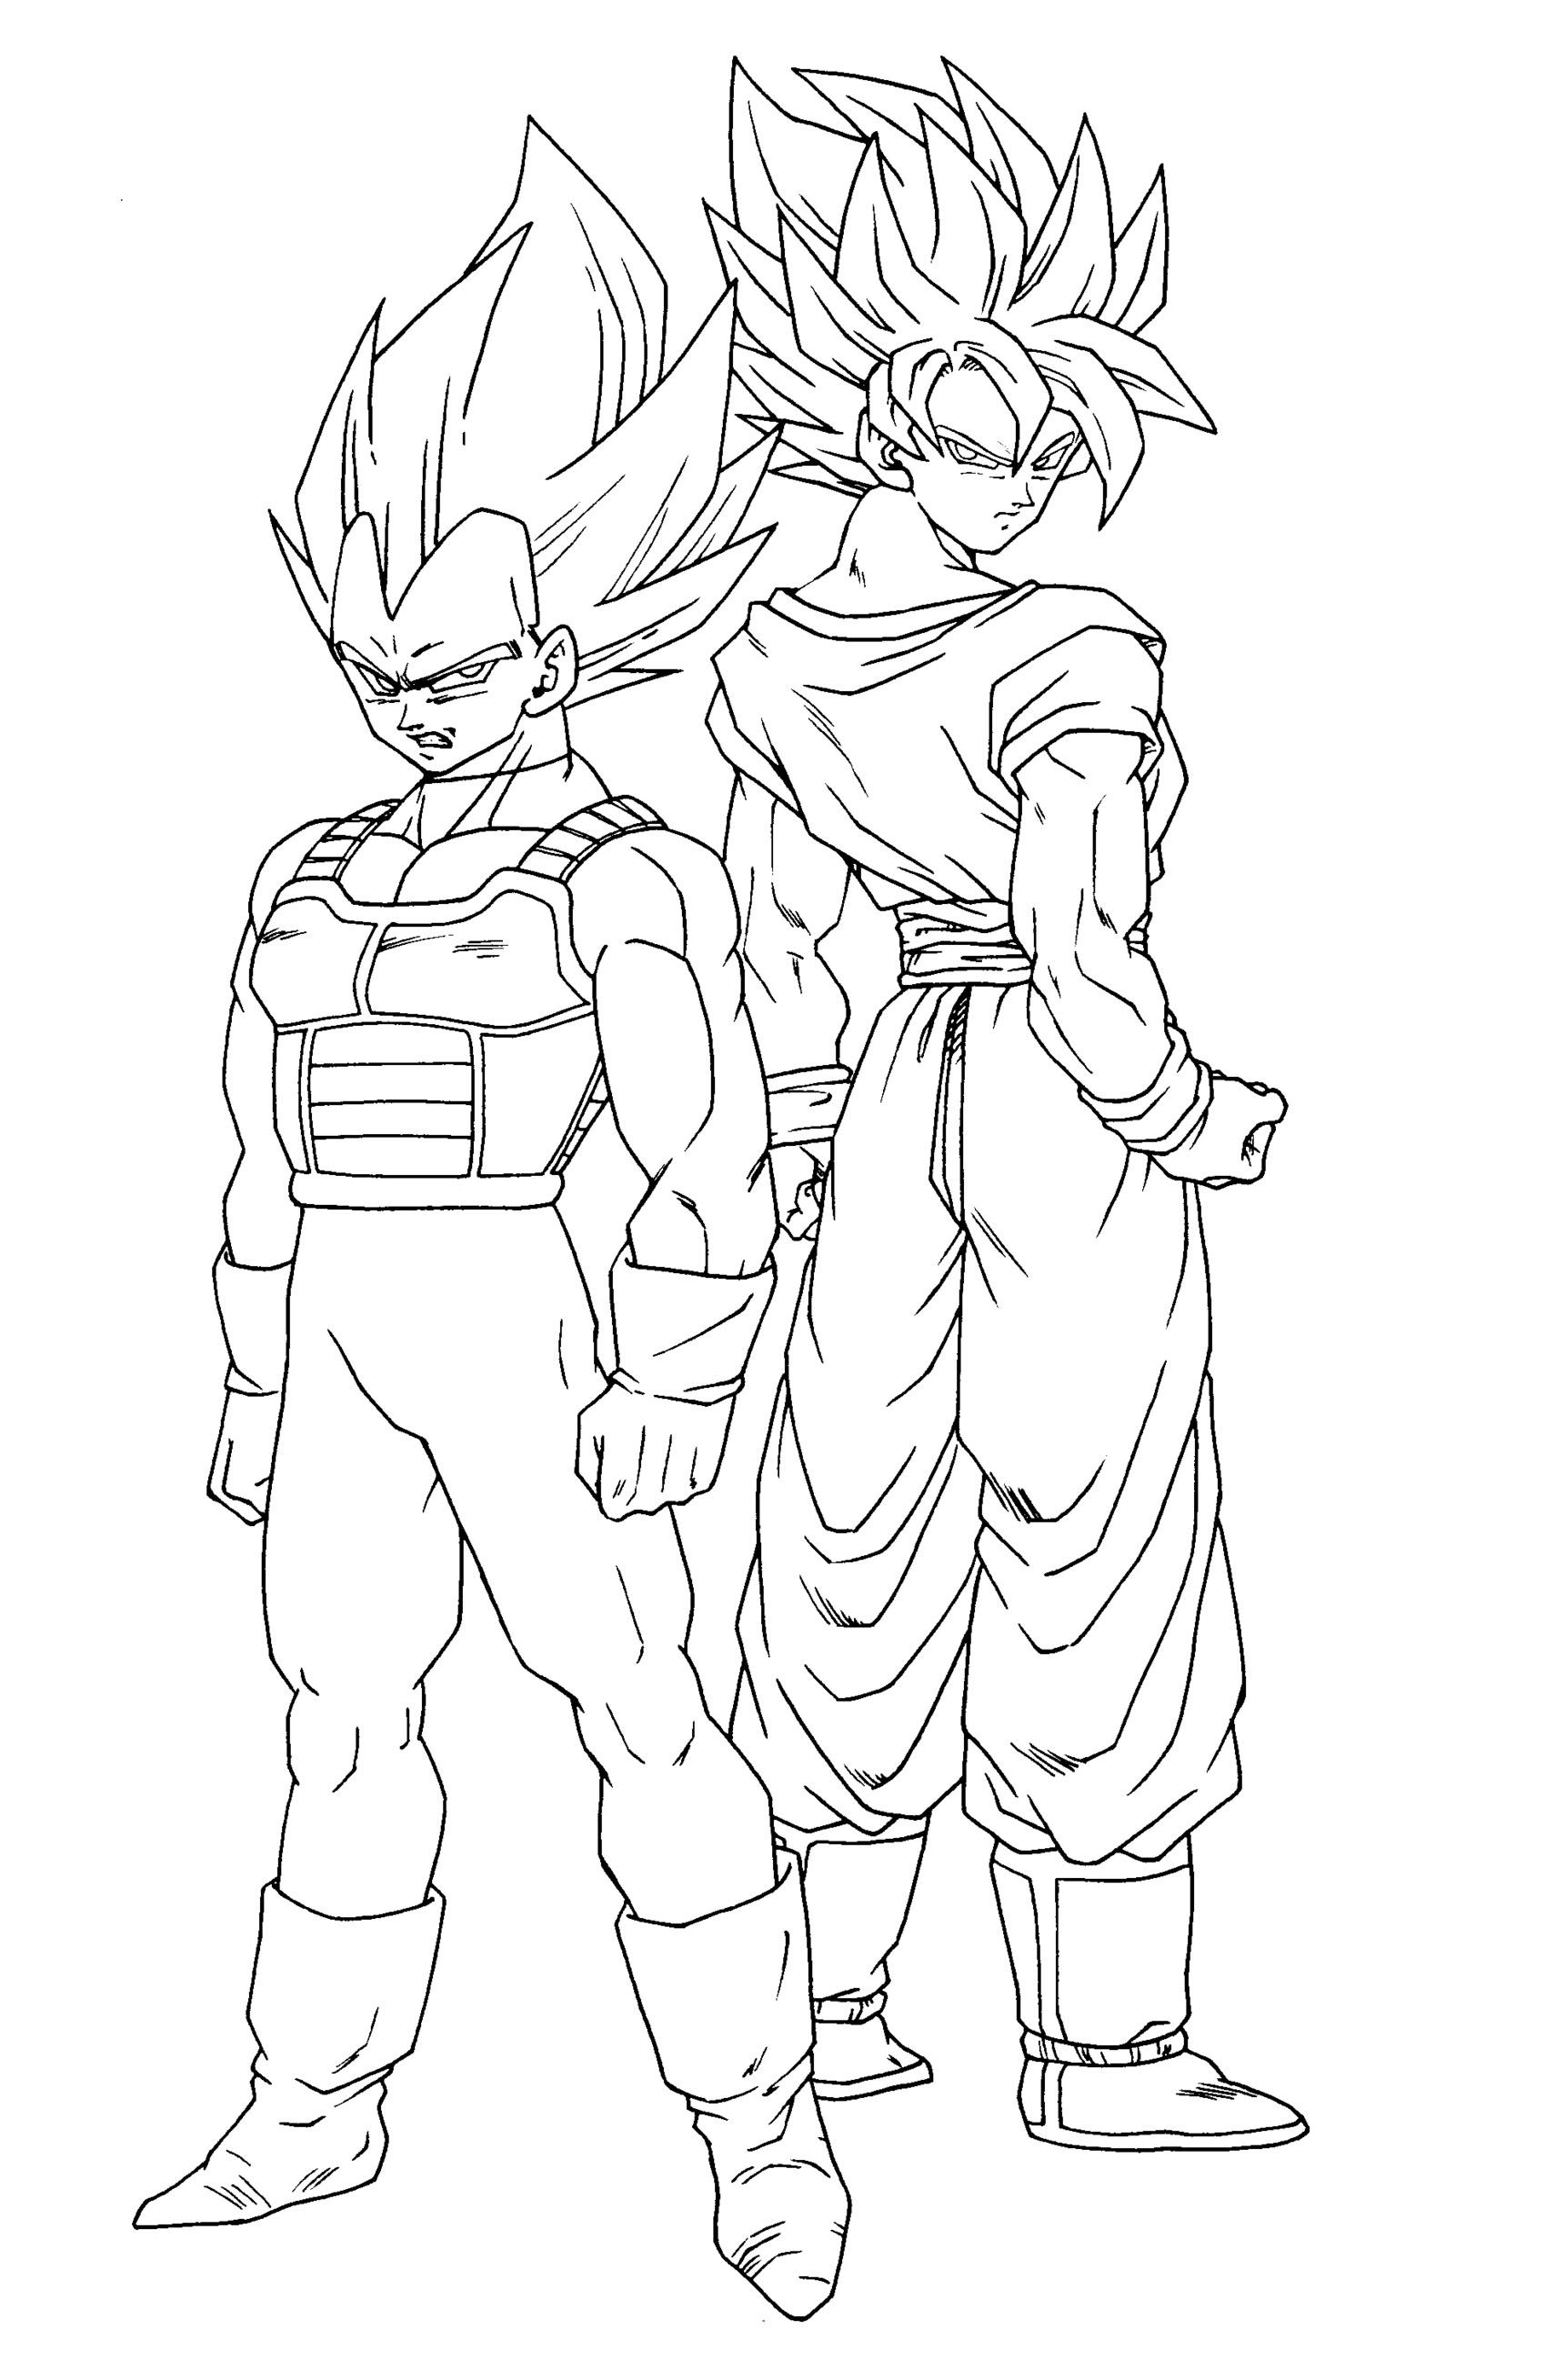 princess peach coloring pages - dragon ball z coloring pages ve a and goku